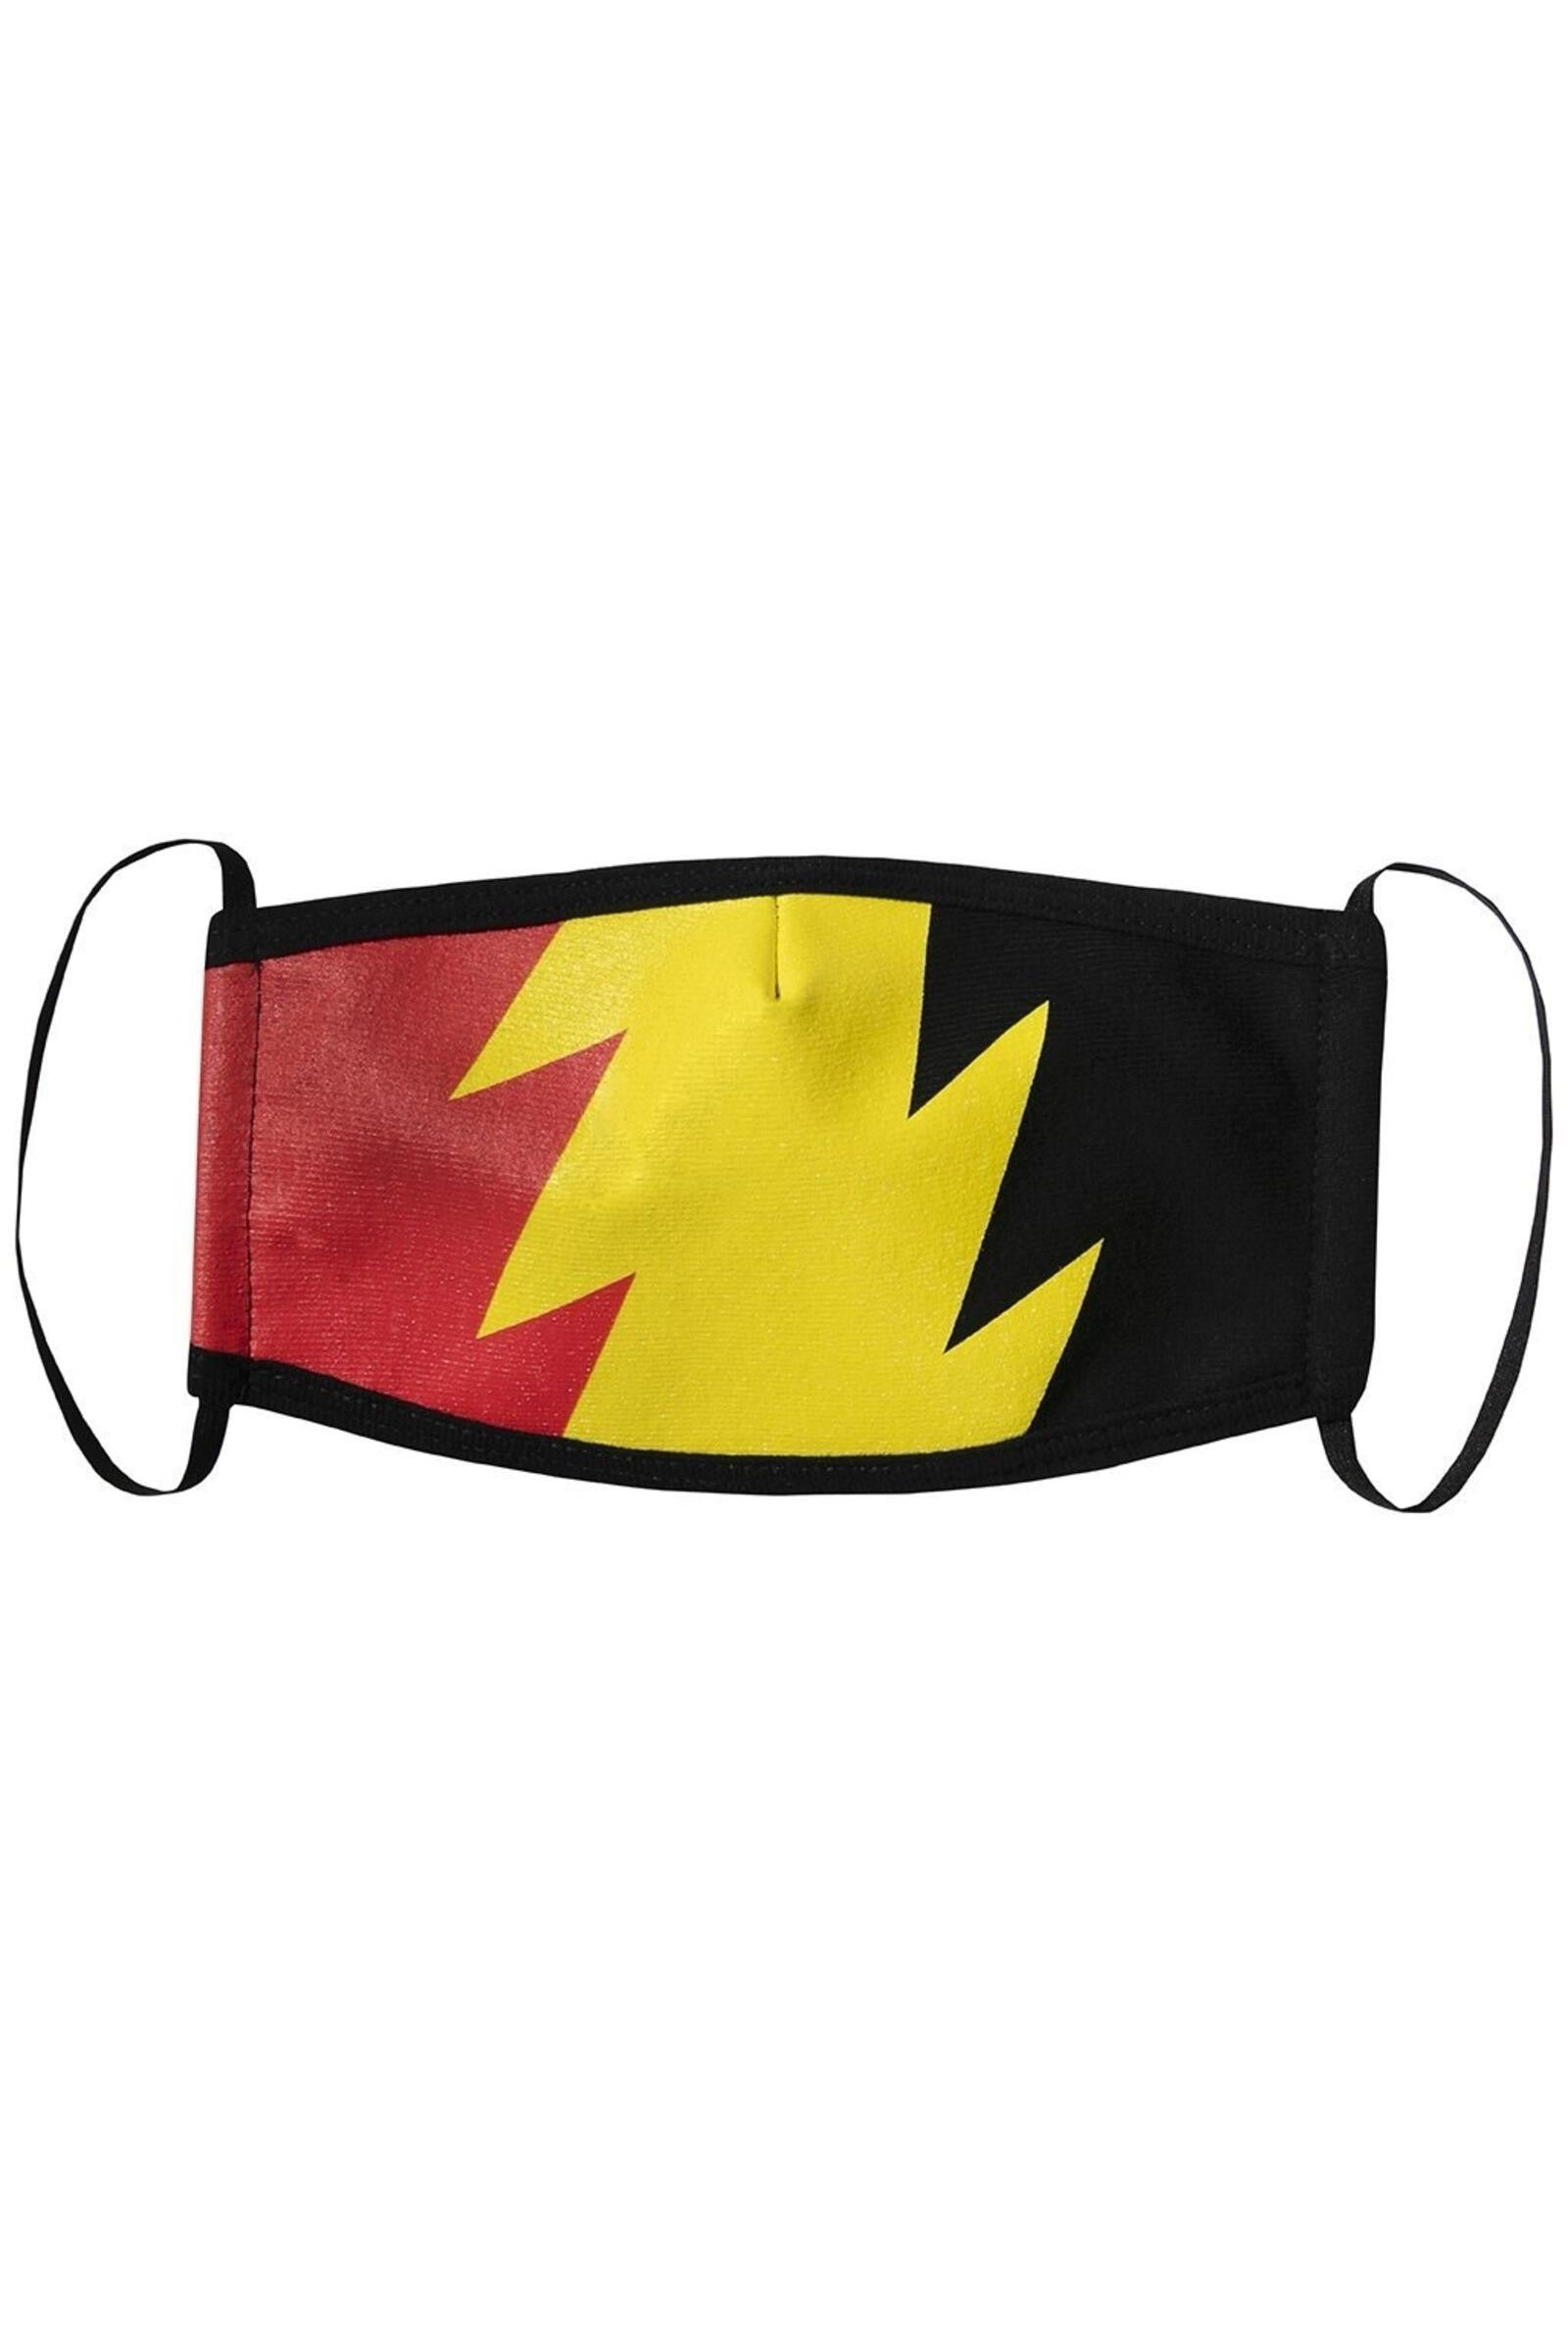 The Hundreds Wildfire Face Mask